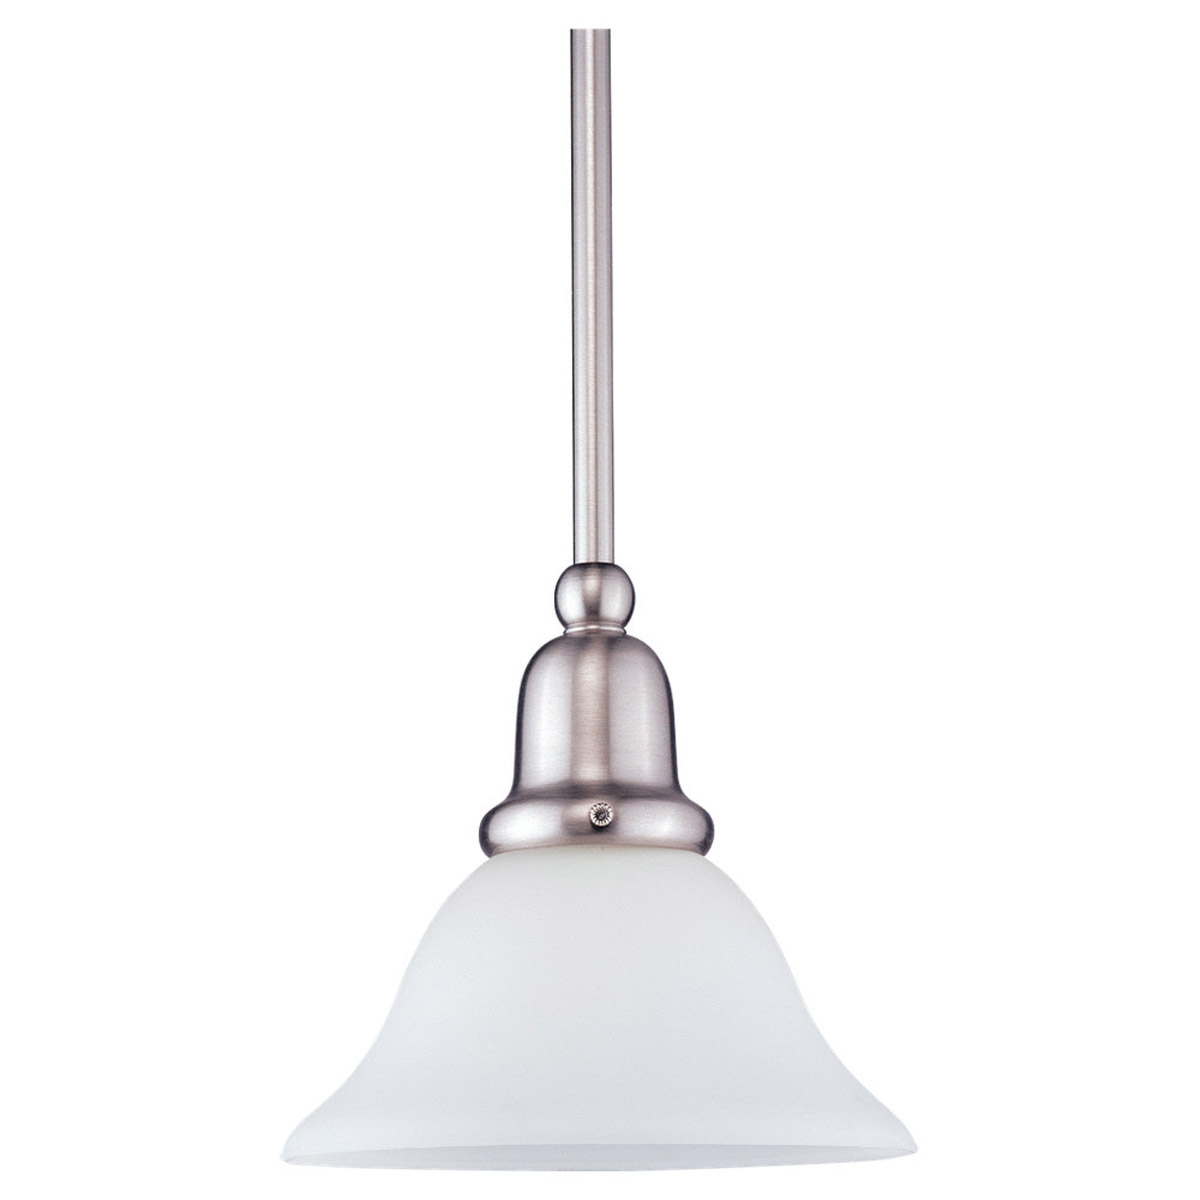 Sea Gull Lighting Sussex 1 Light Mini Pendant in Brushed Nickel 69459BLE-962 photo